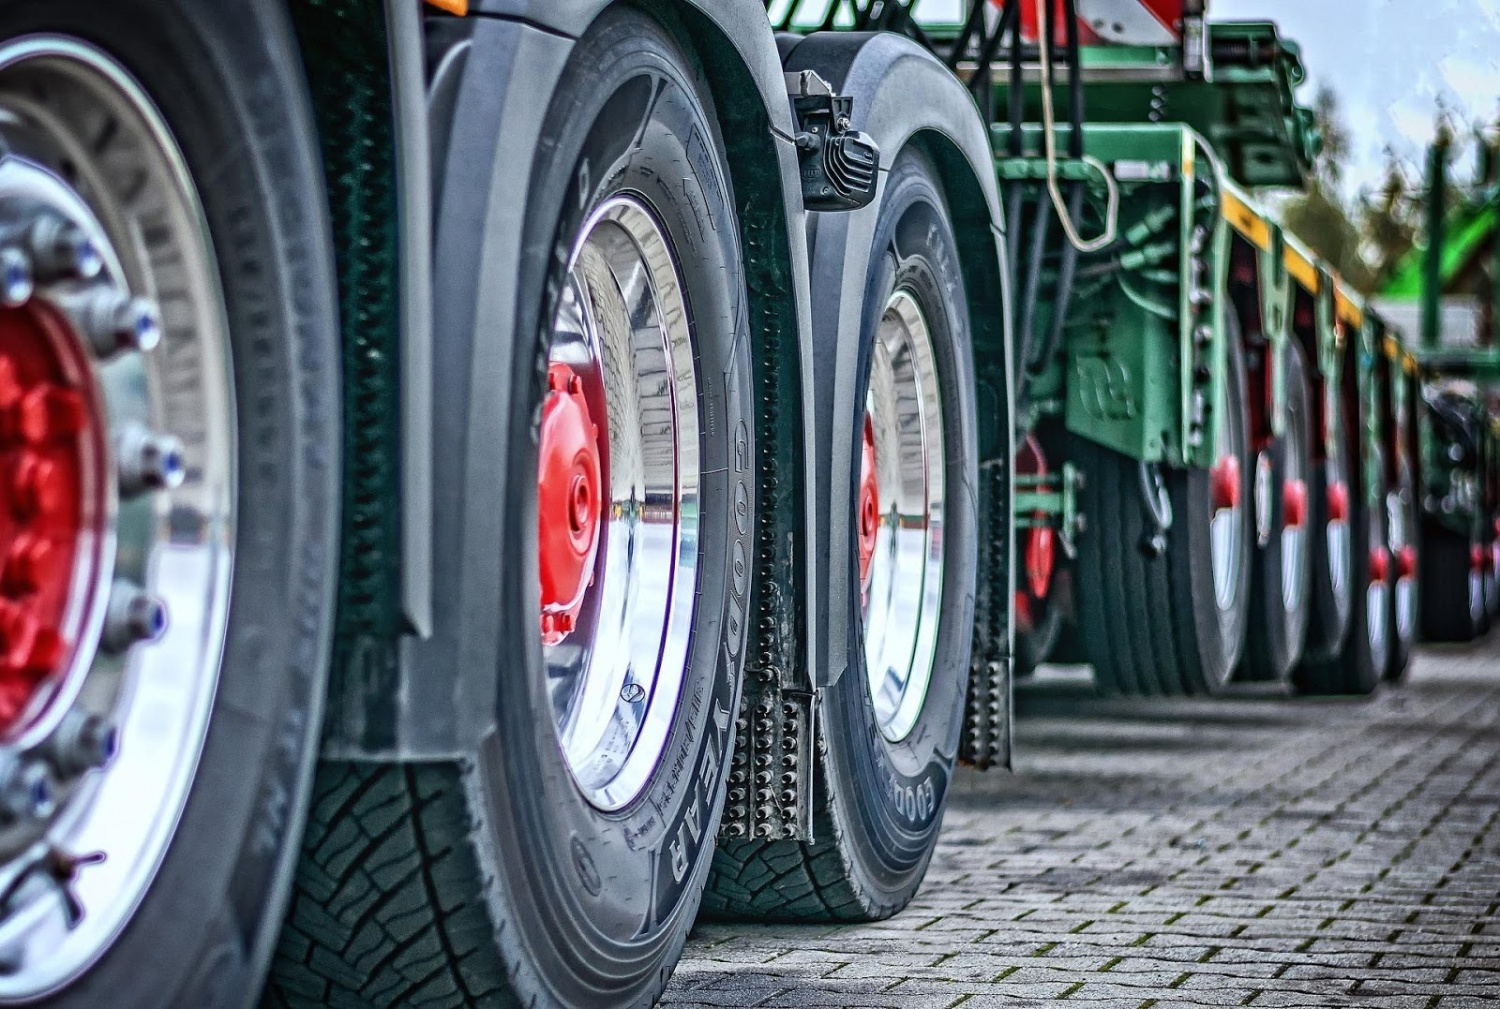 Craig Bouchard and States Band Together To Forward Sustainability In Commercial Trucking Sector